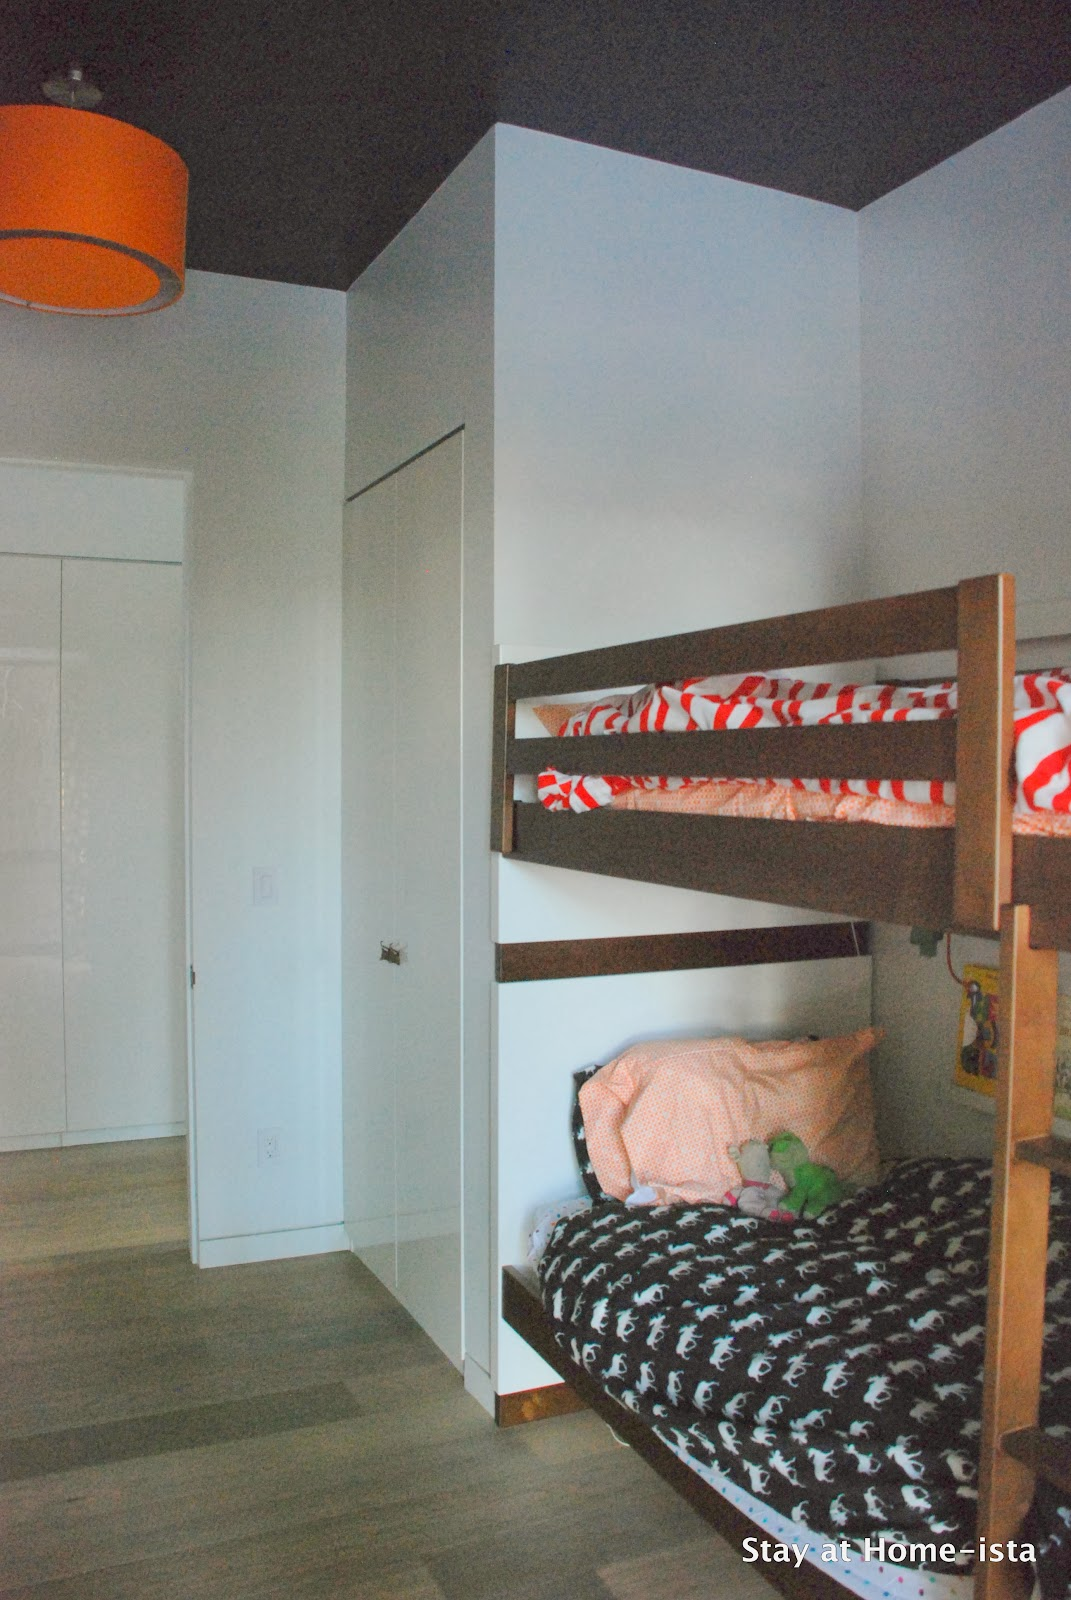 Bunk room with a navy ceiling and orange drum shade